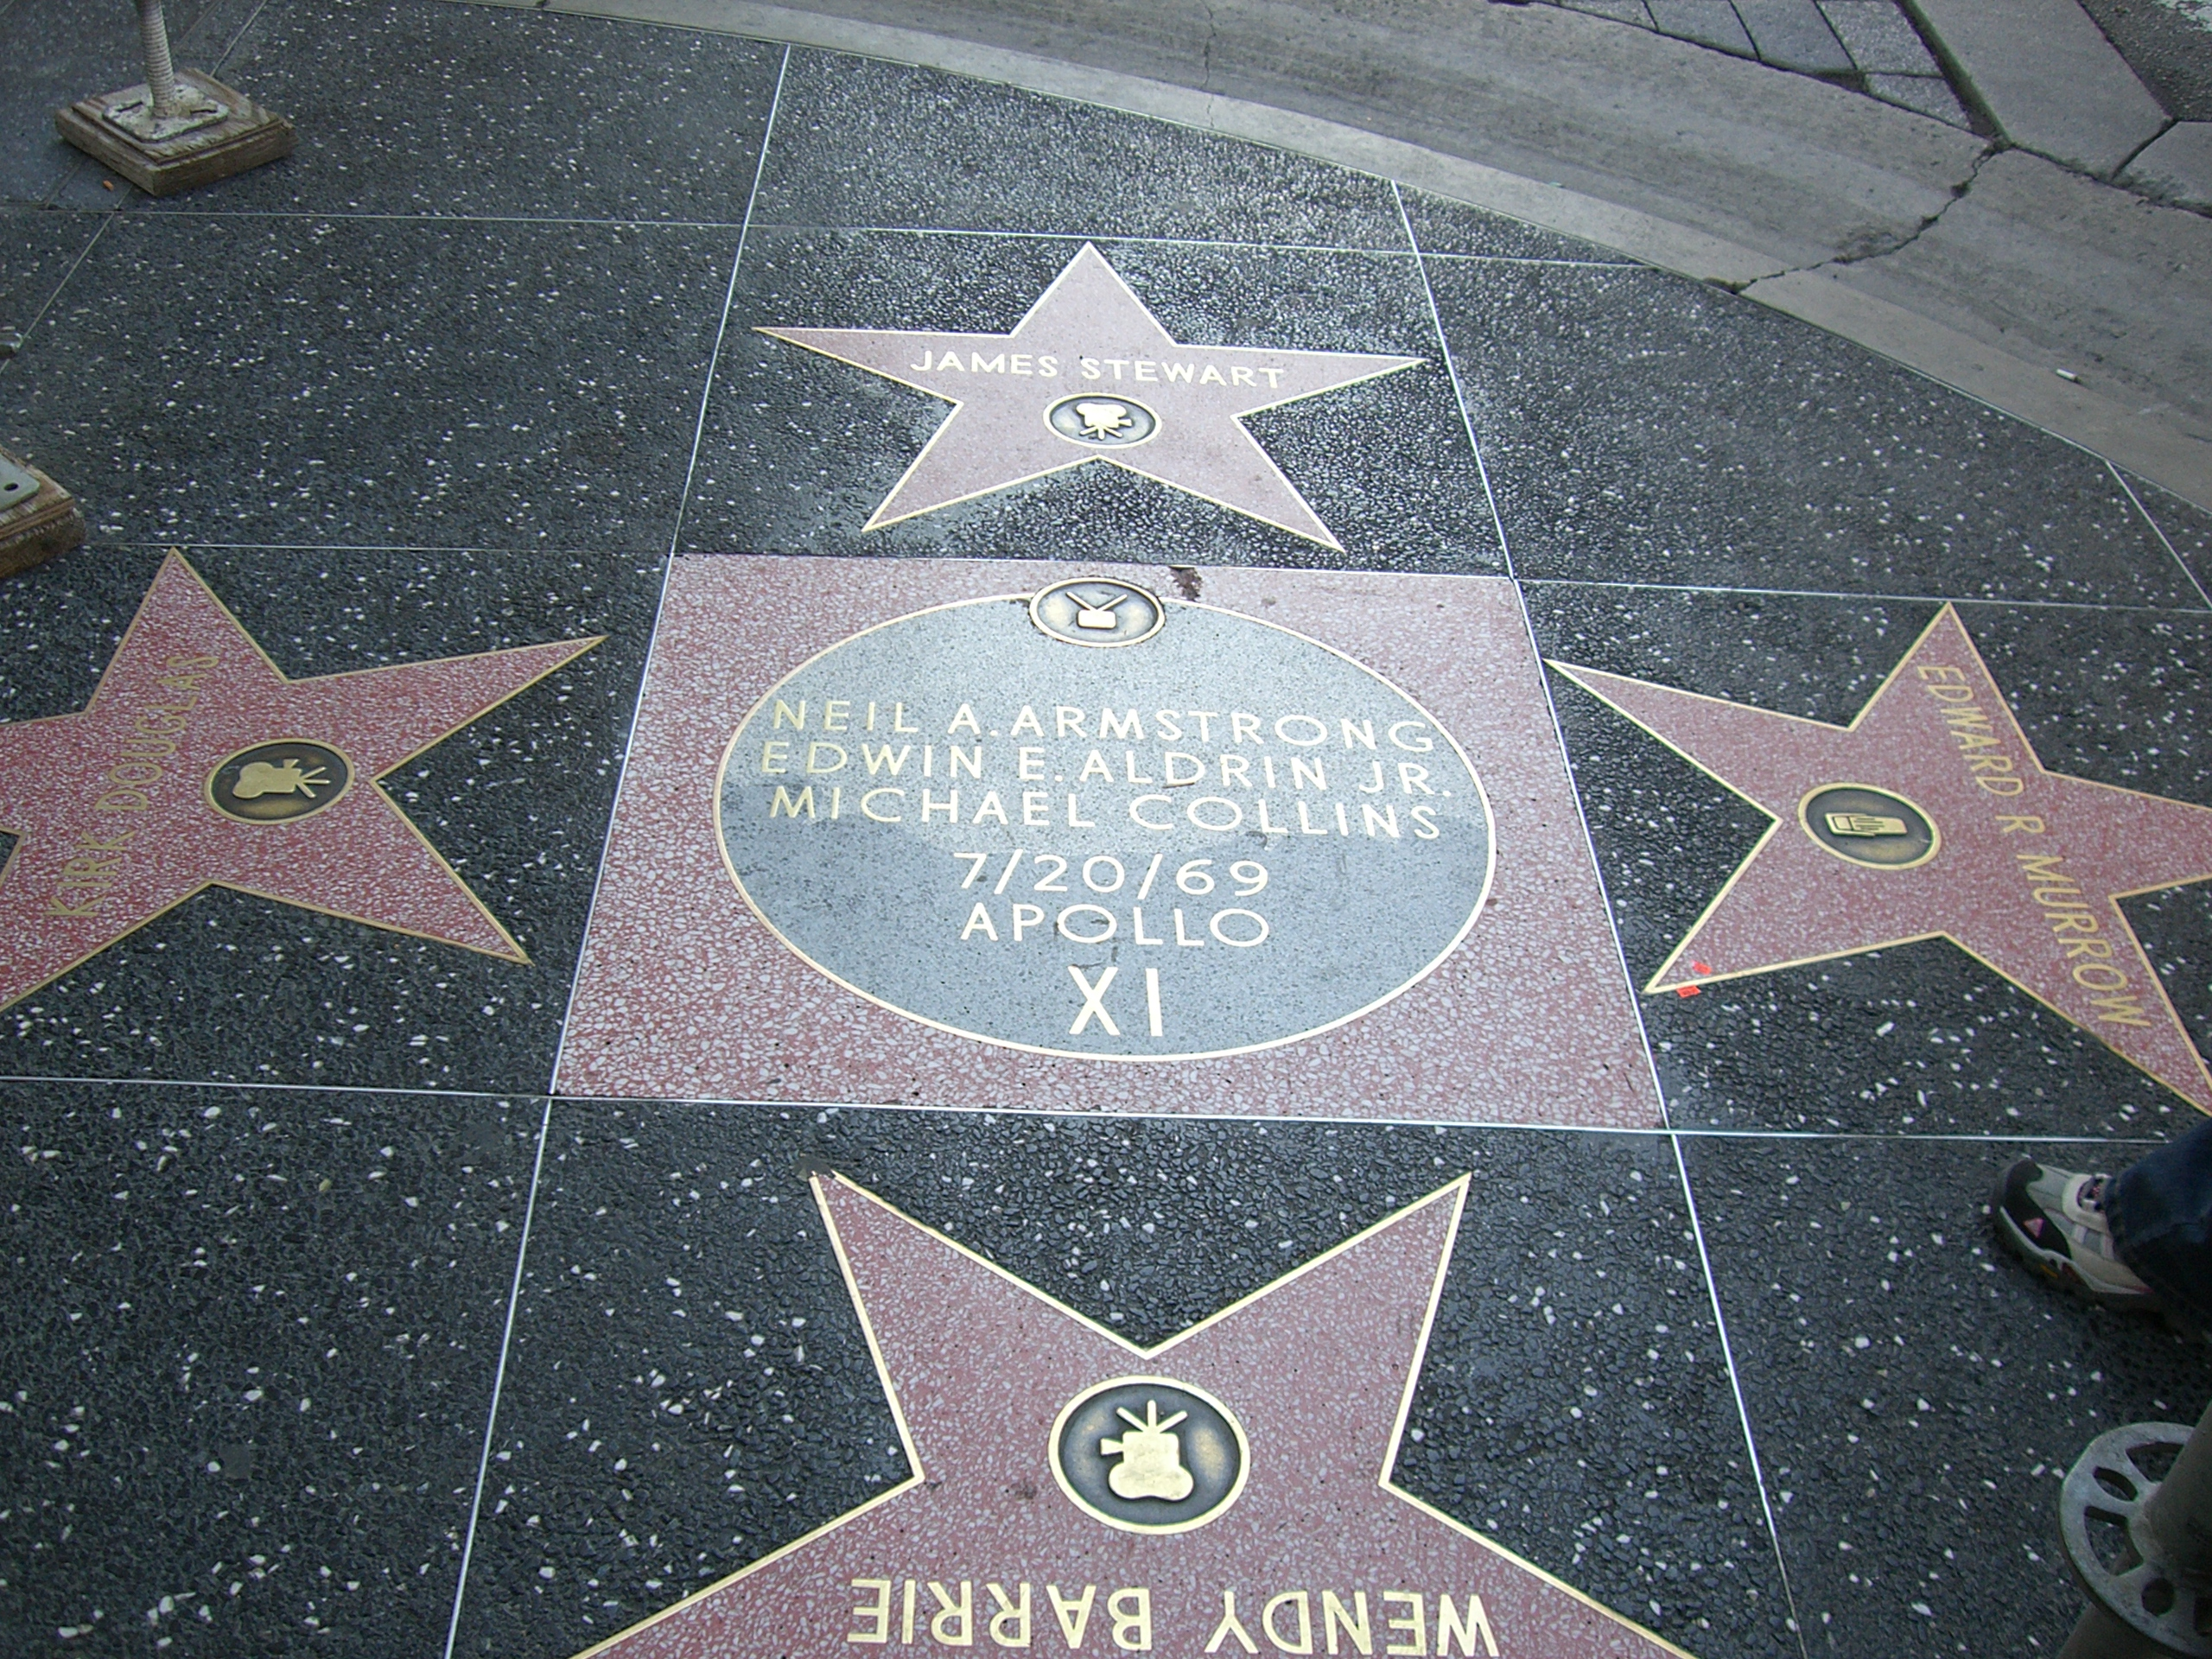 Filewalk Of Fame Los Angeles California4348jpg Wikimedia